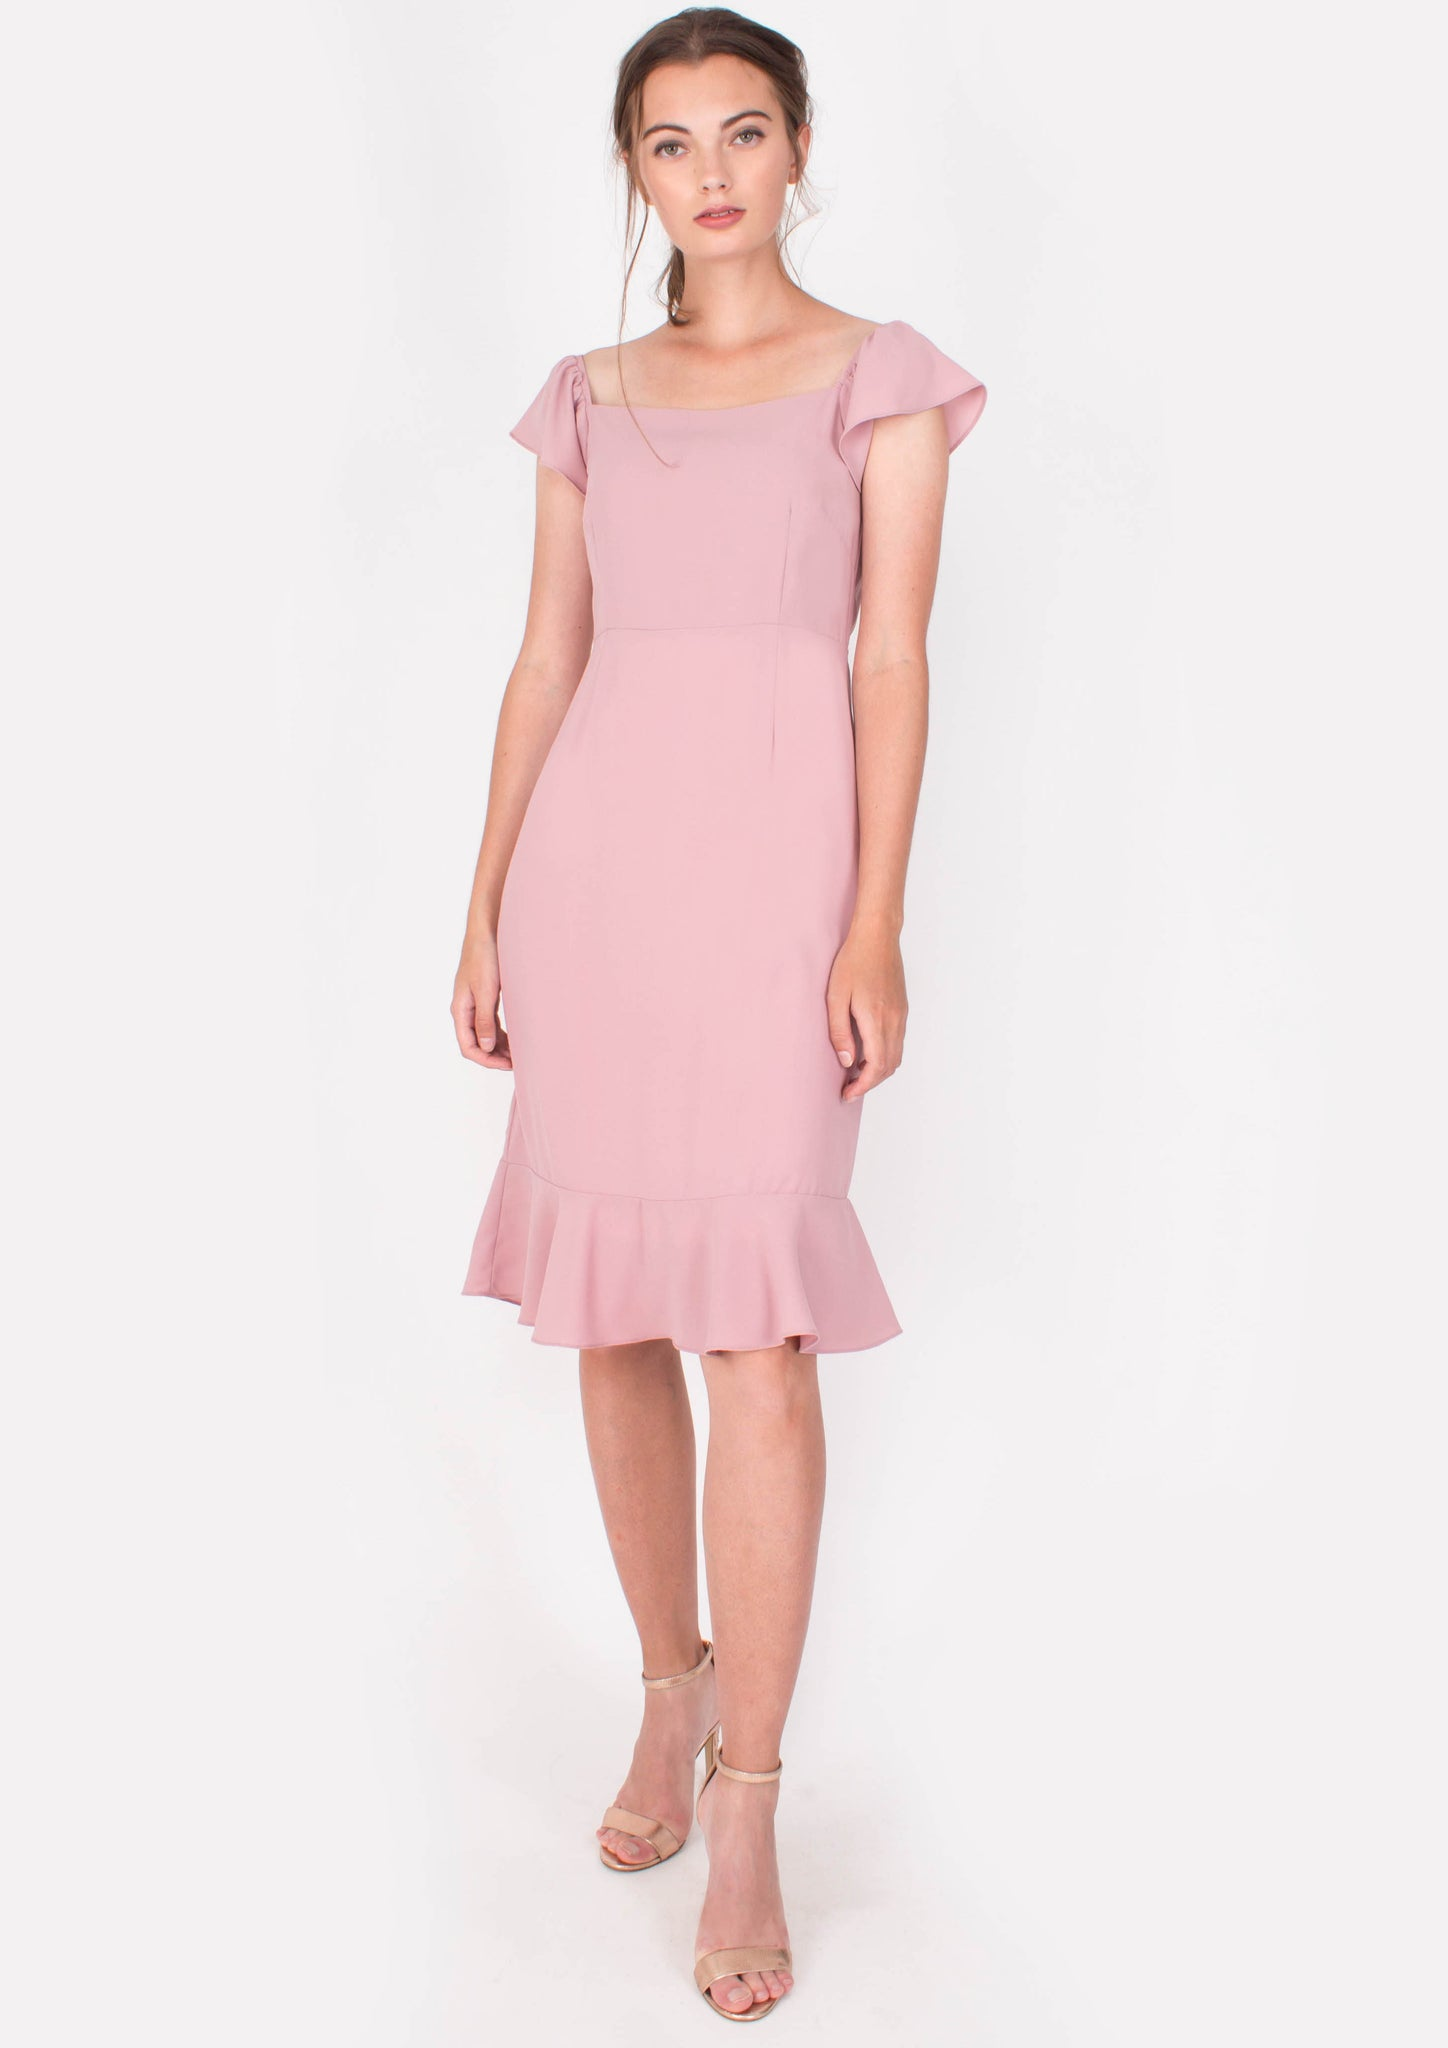 Vigour Midi Dress (Pink) - Moxie